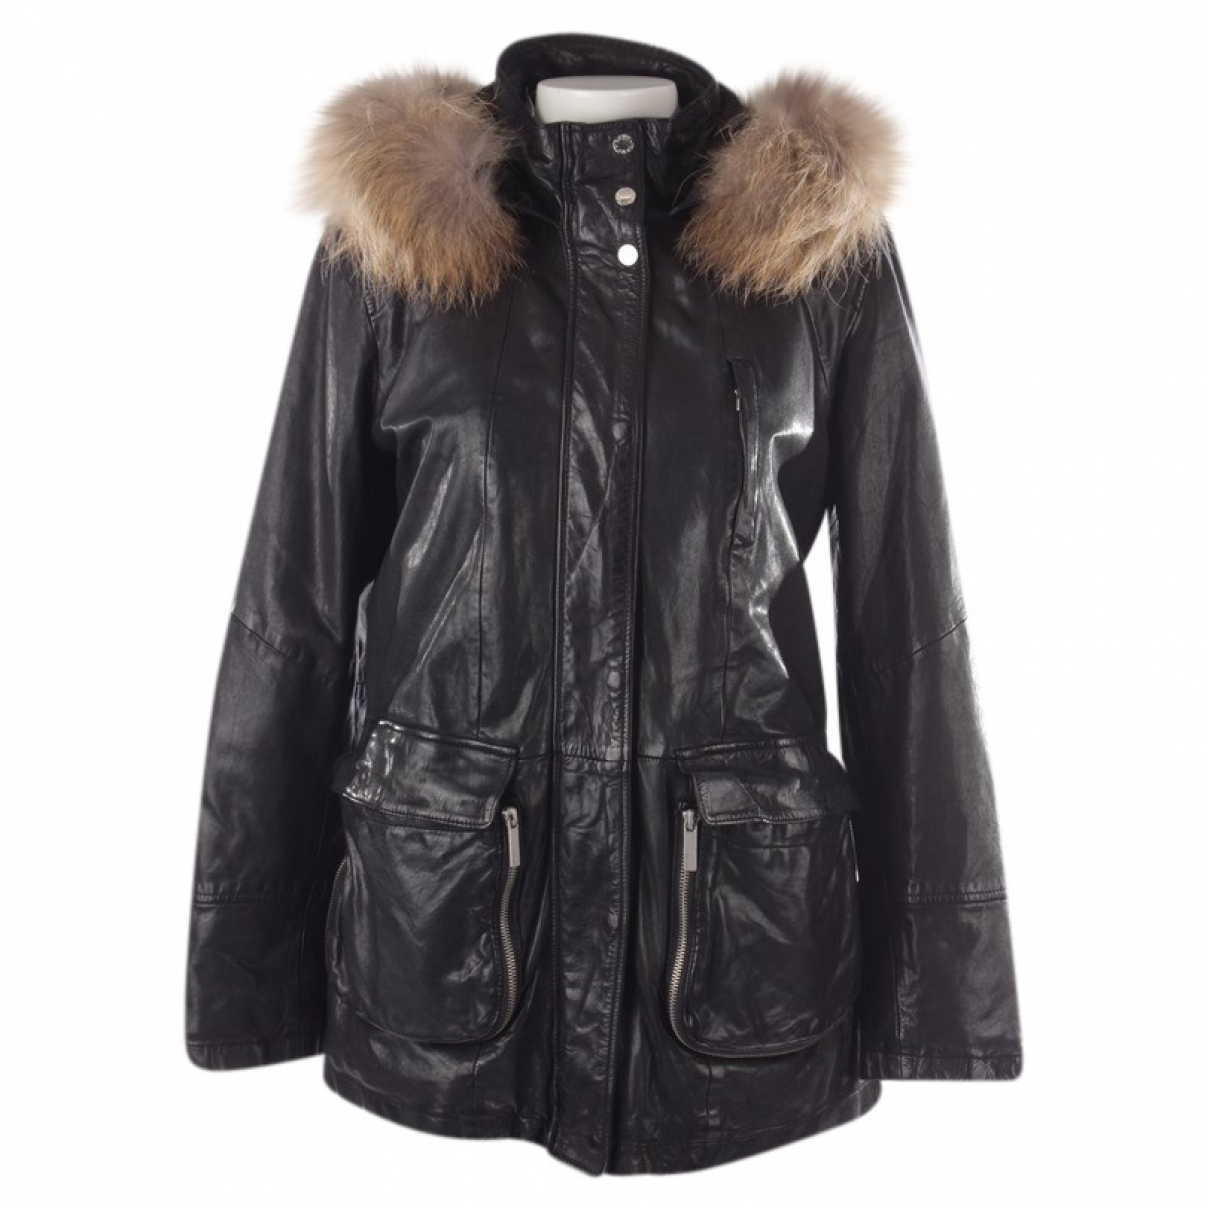 Oakwood \N Black Leather jacket for Women S International